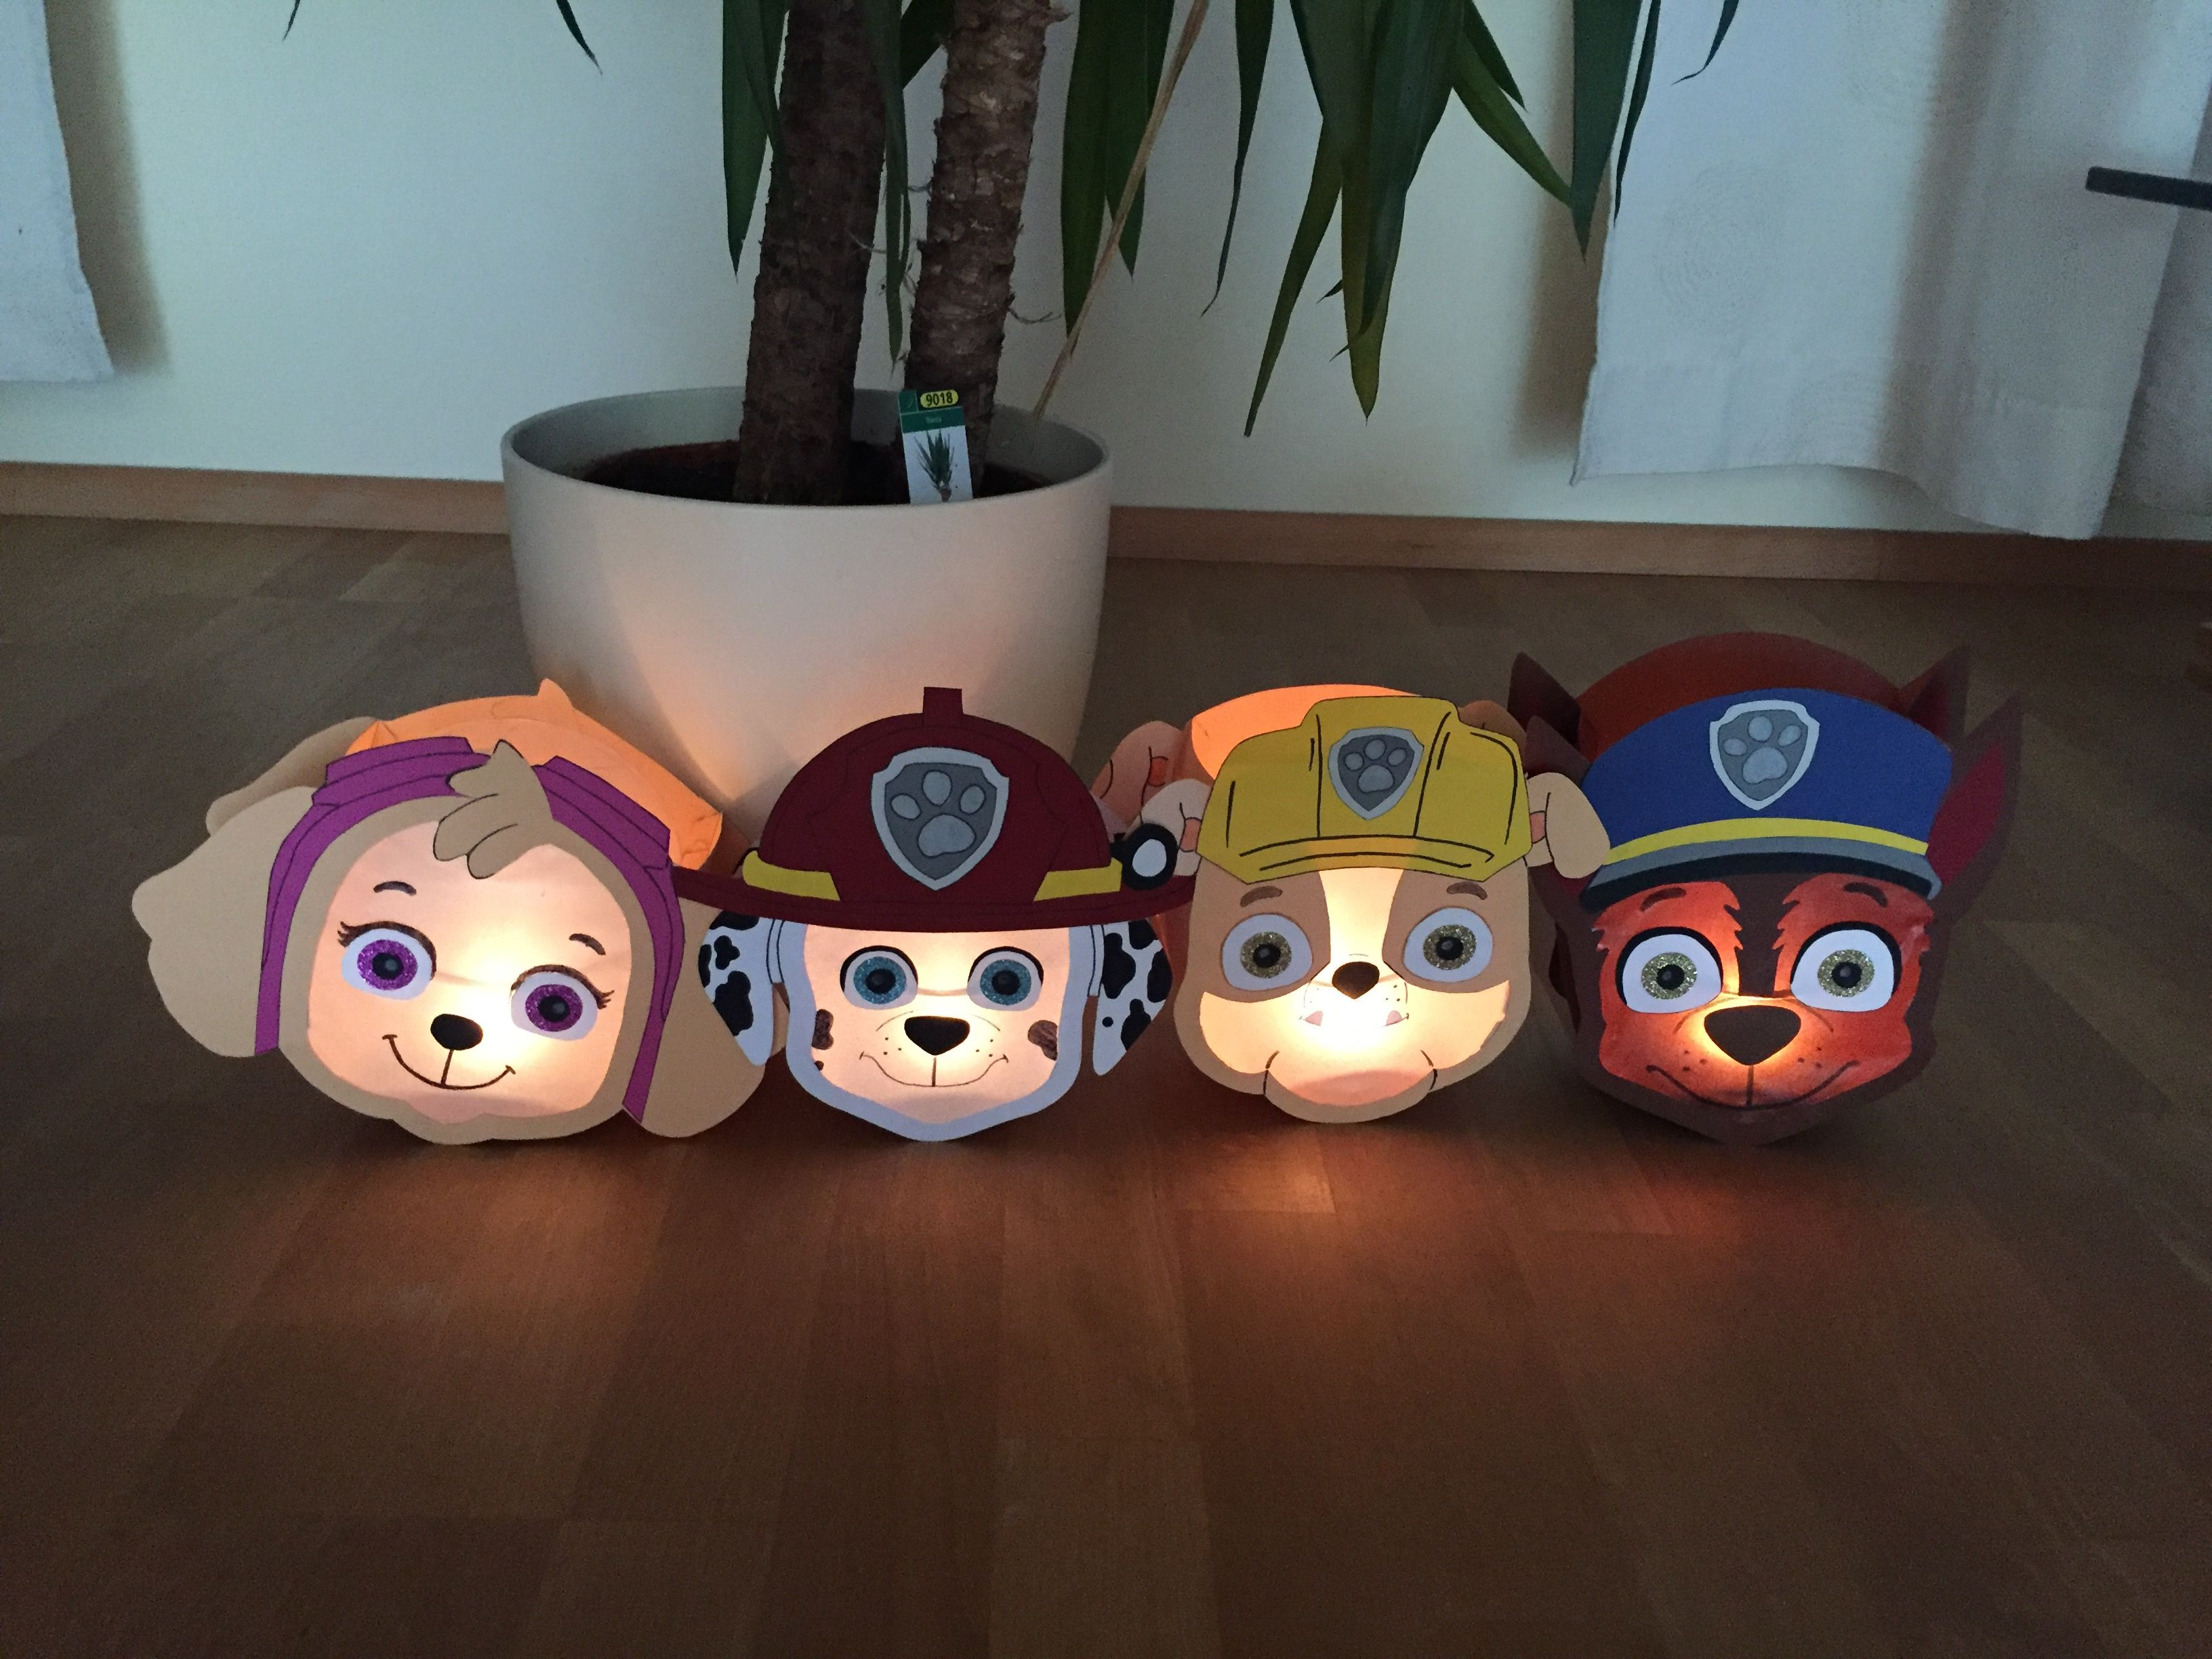 Paw Patrol Laterne Sky Marshall Rubble Chase Kinderleichte Laternen Basteln Laternen Basteln Laterne Basteln Anleitung